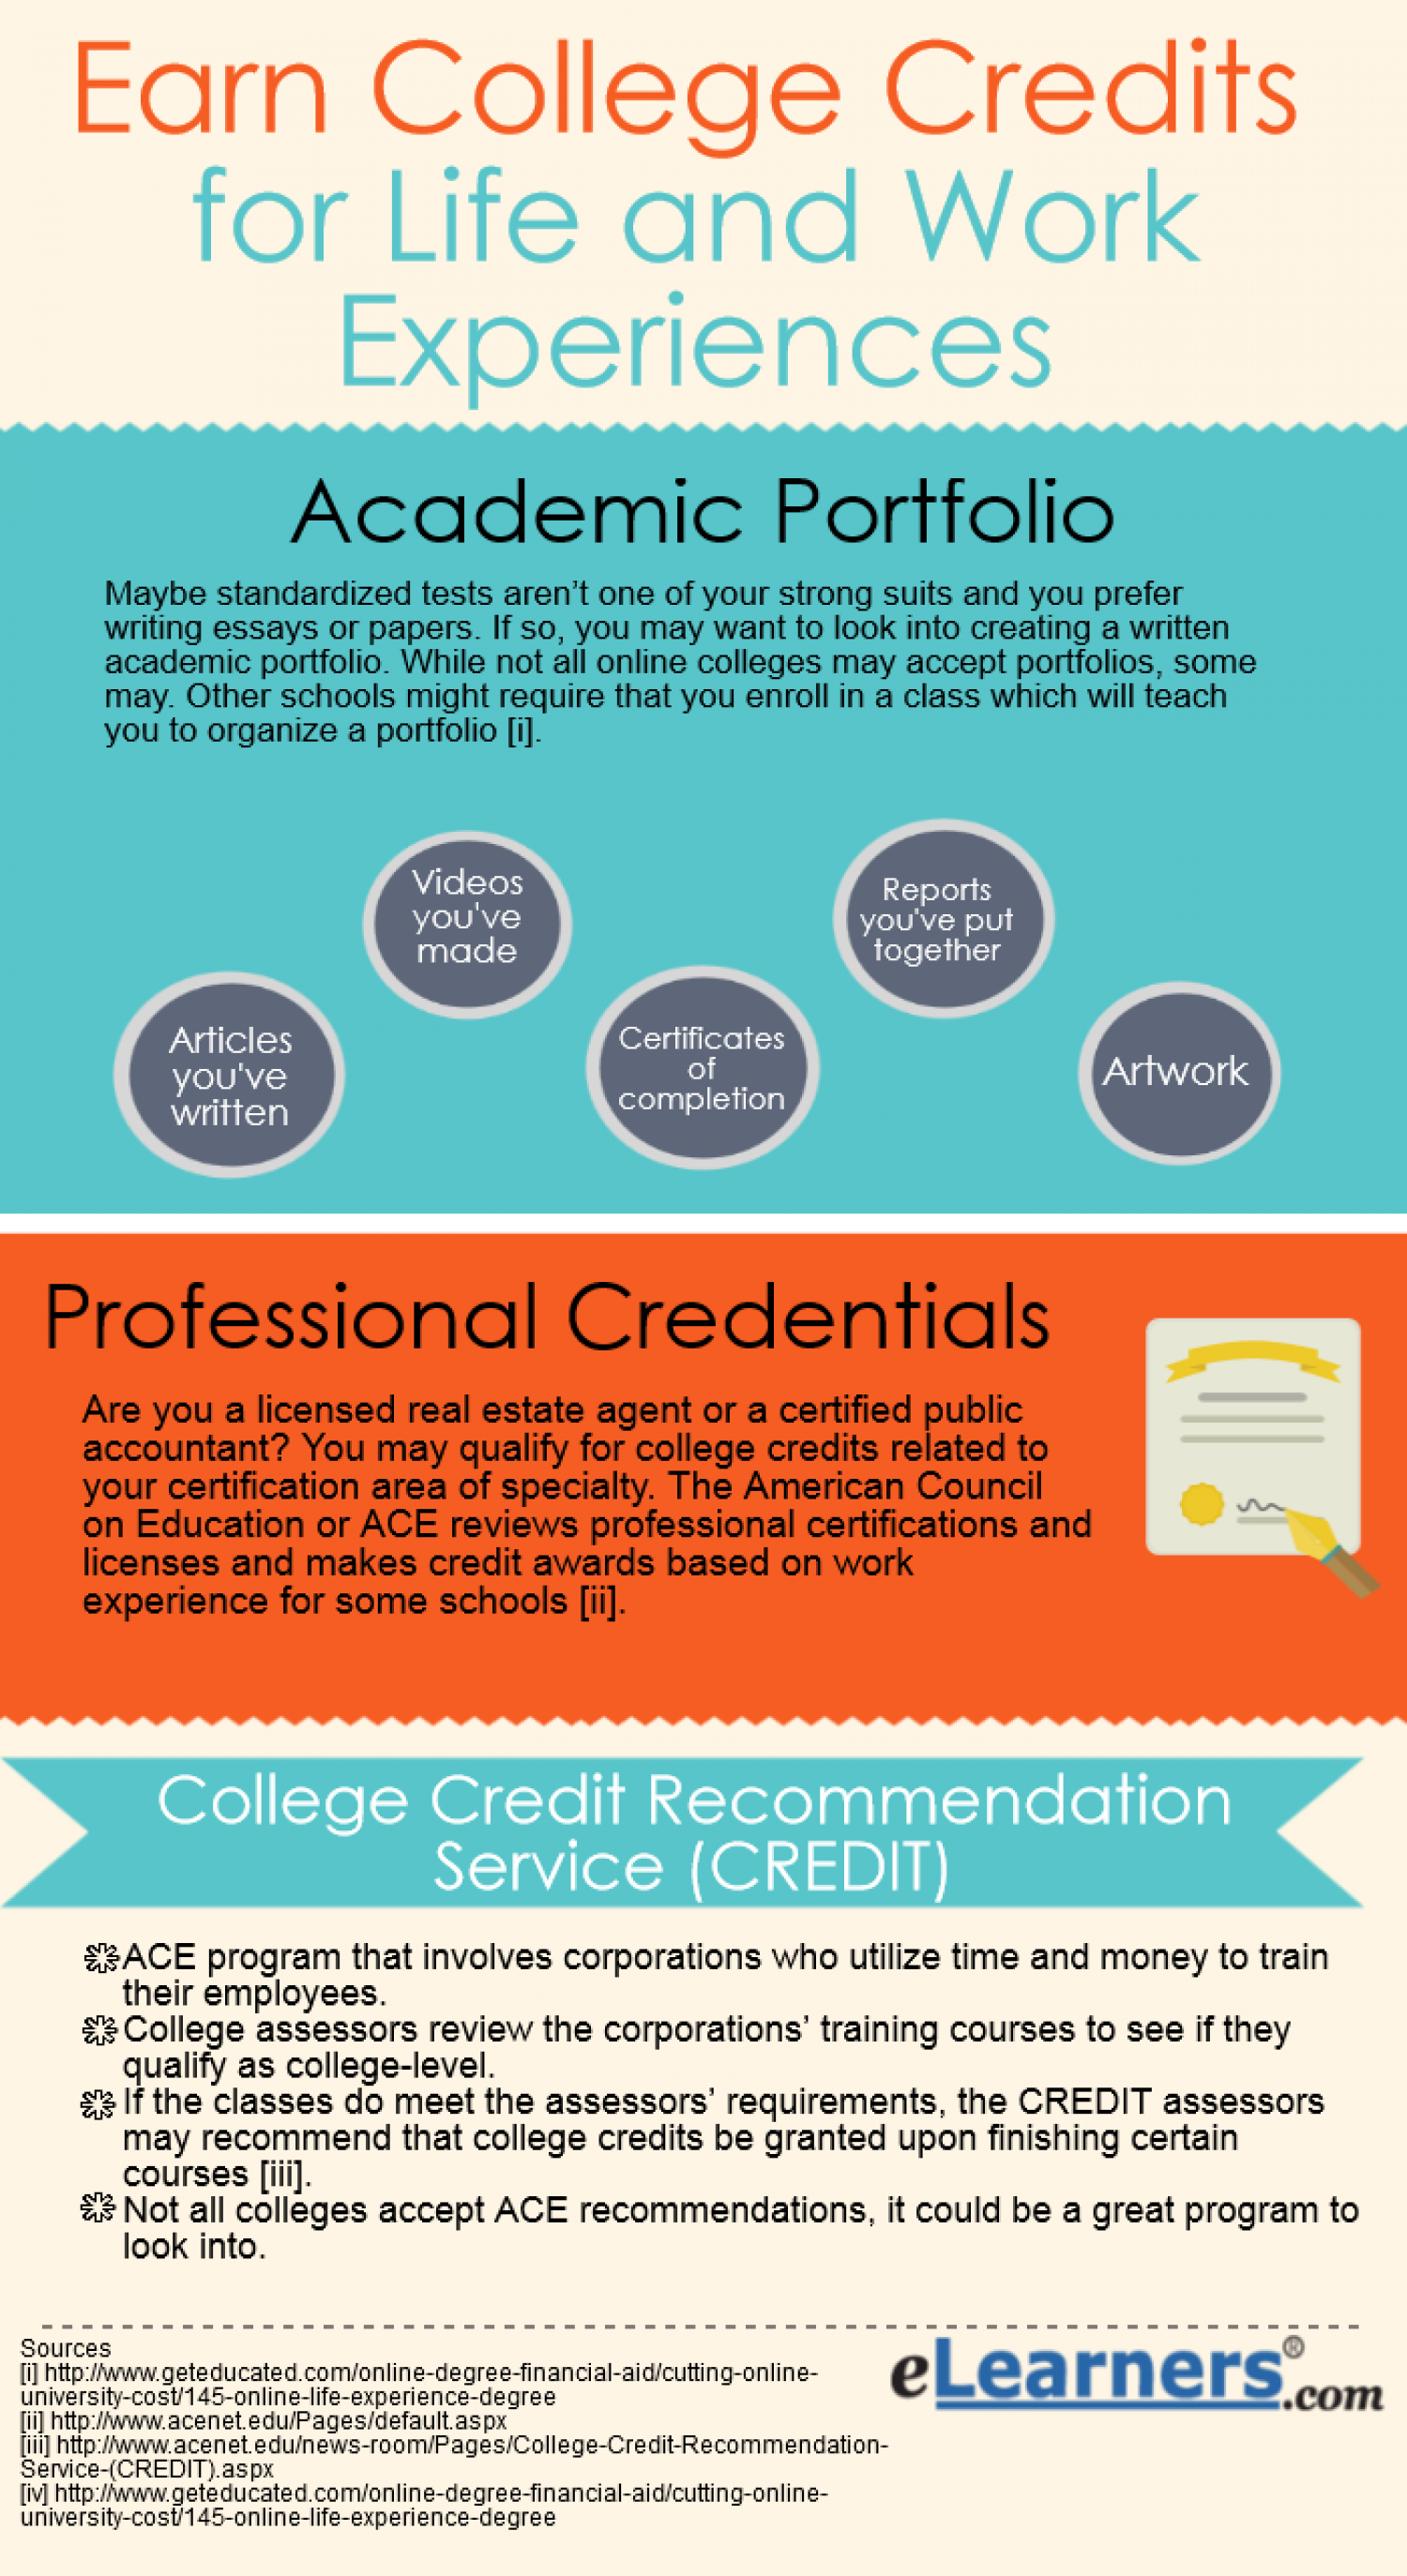 earn college credits for life and work experiences infographic